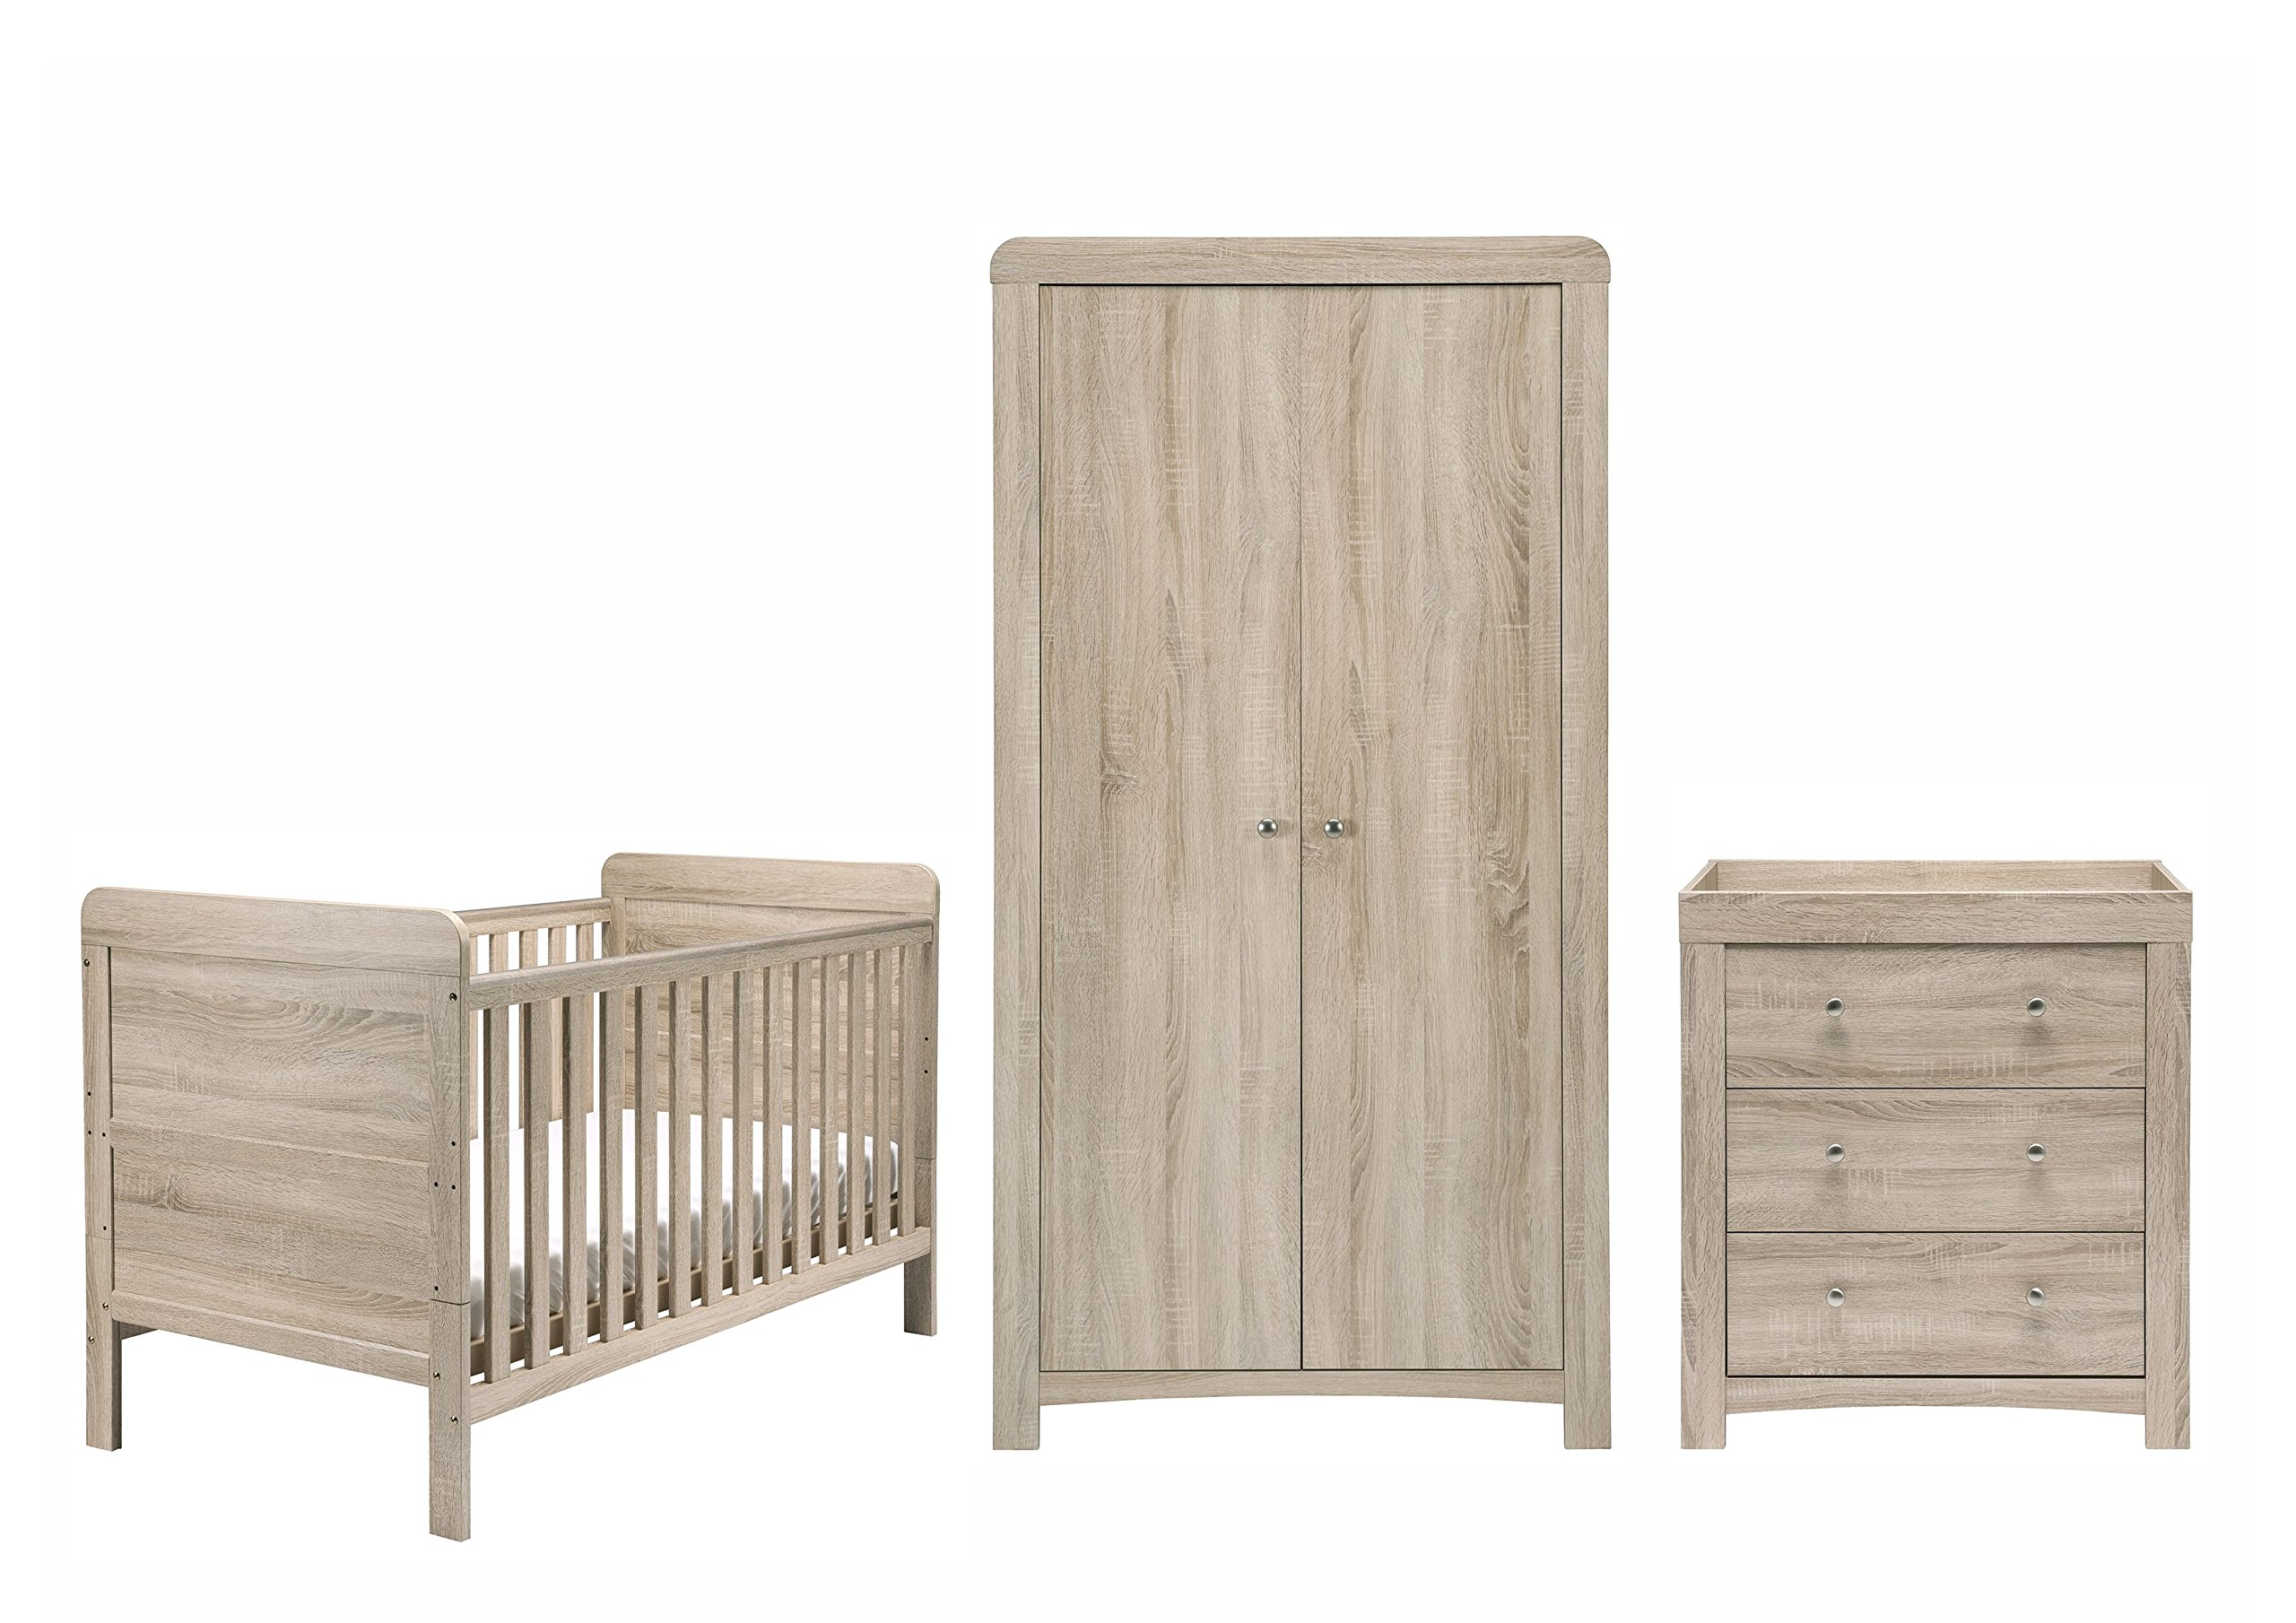 East Coast Nursery Fontana Roomset East Coast Nursery Ltd Roomset includes, cotbed, dresser and wardrobe Washed-wood effect Cotbed has 3 base heights and 2 fixed sides 1